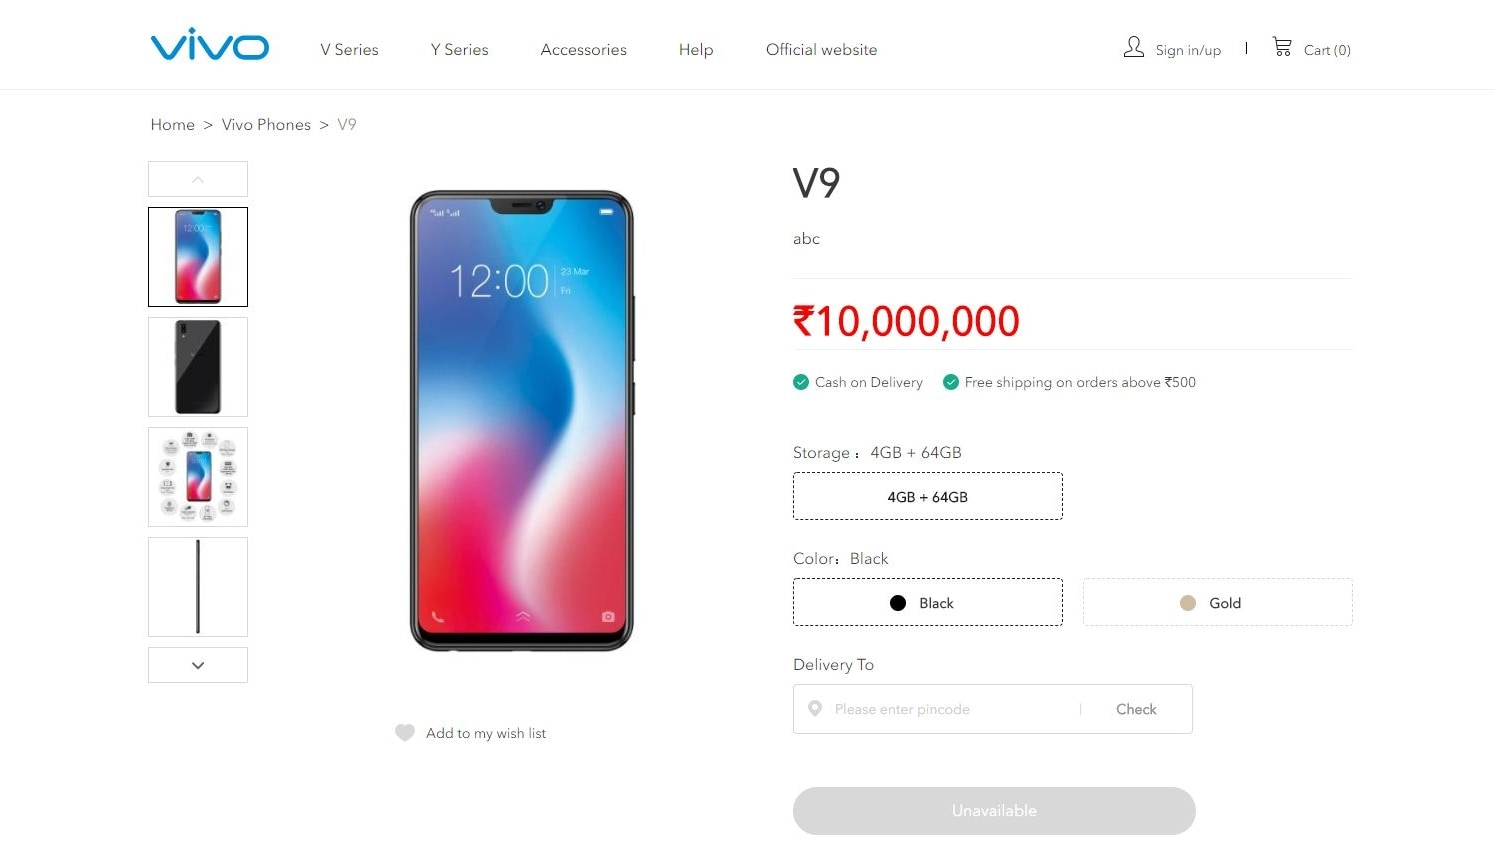 Specifications of Vivo V9 surface ahead of its India launch